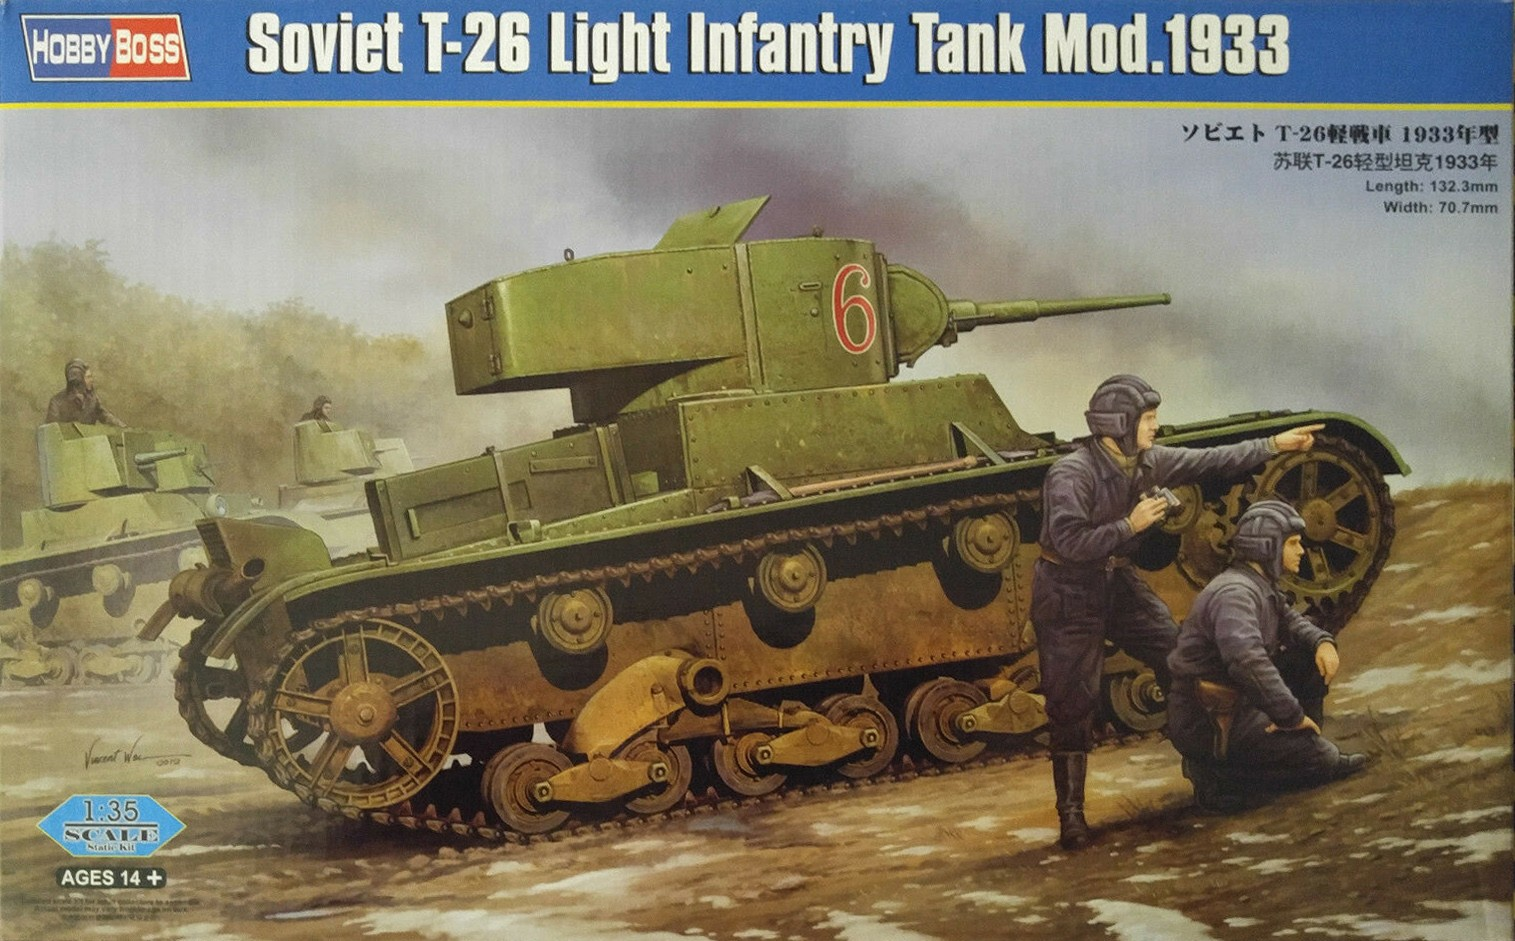 82495 Soviet T-26 Light Infantry Tank Mod.1933 Image